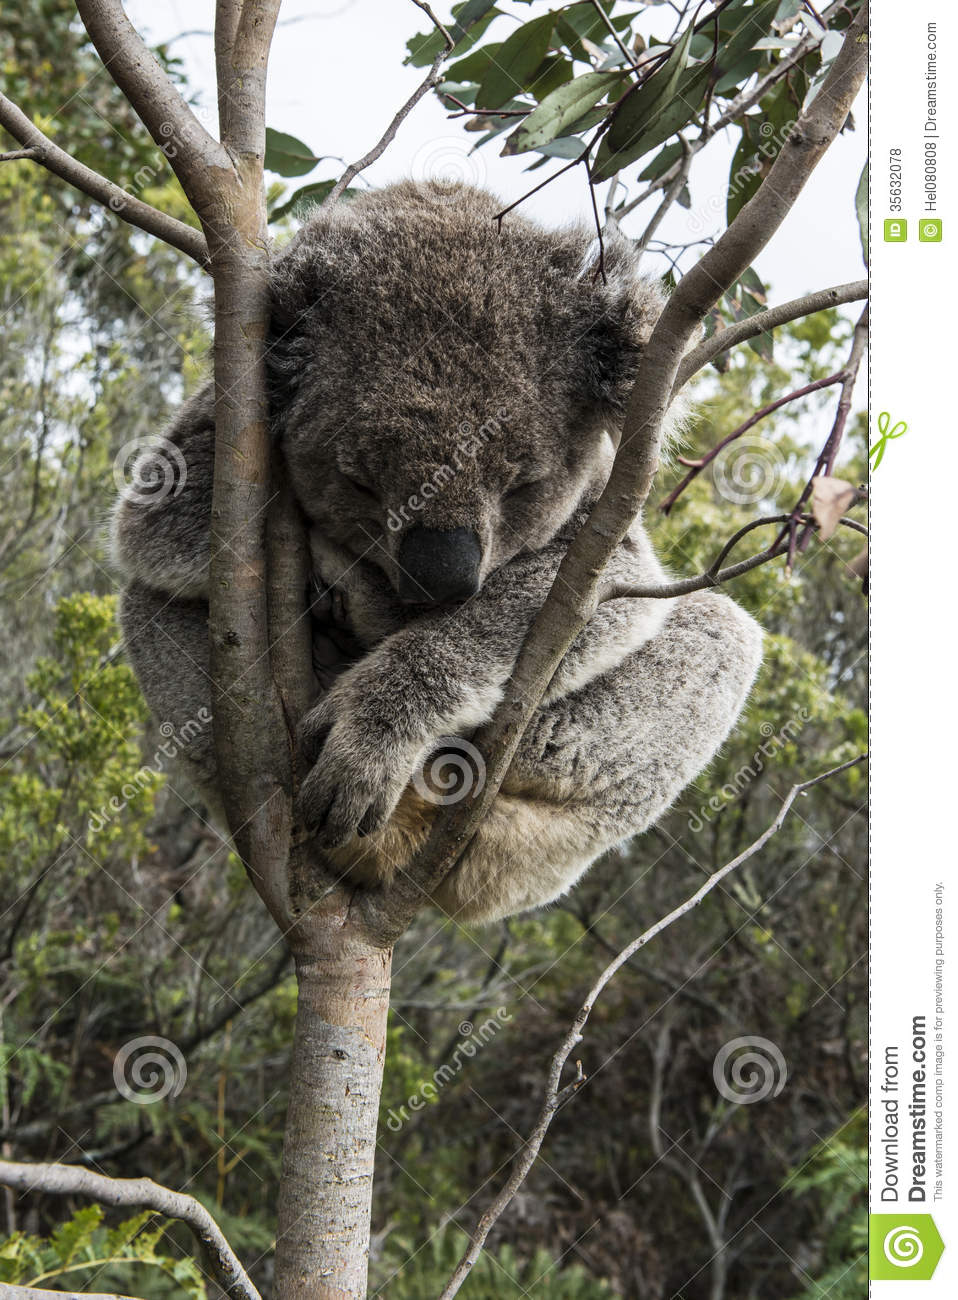 Koala Bear Sleeping In Tree Stock Photo - Image: 35632078 Zoo Road Sign